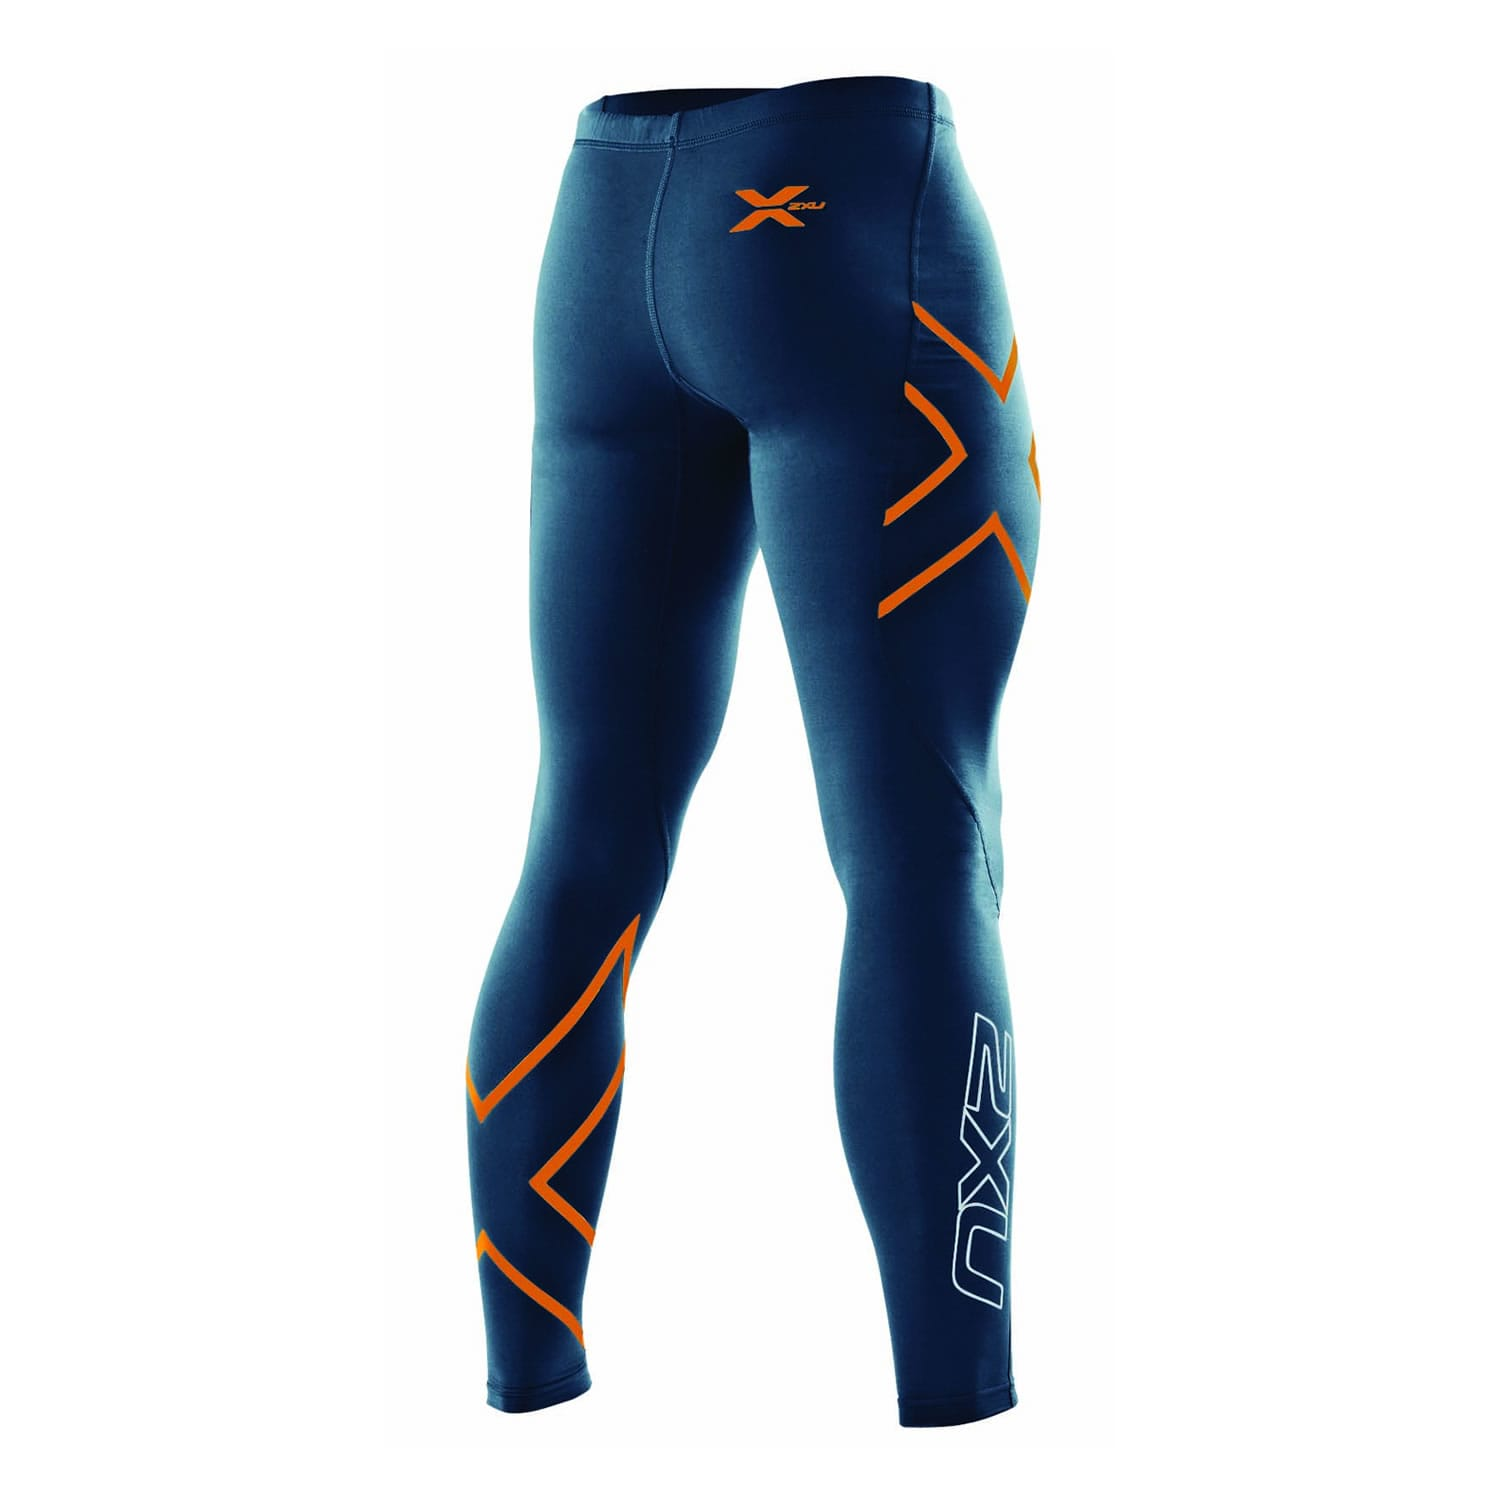 Shop a variety of men's recovery compression gear, including men's compression tights, men's compression sleeves, men's compression shirts and more. Free Shipping Over $49 Details ; My Account. Help Learn More About Compression Clothing for Men Selection. Shop Men's Compression Clothing to Give You an Edge.